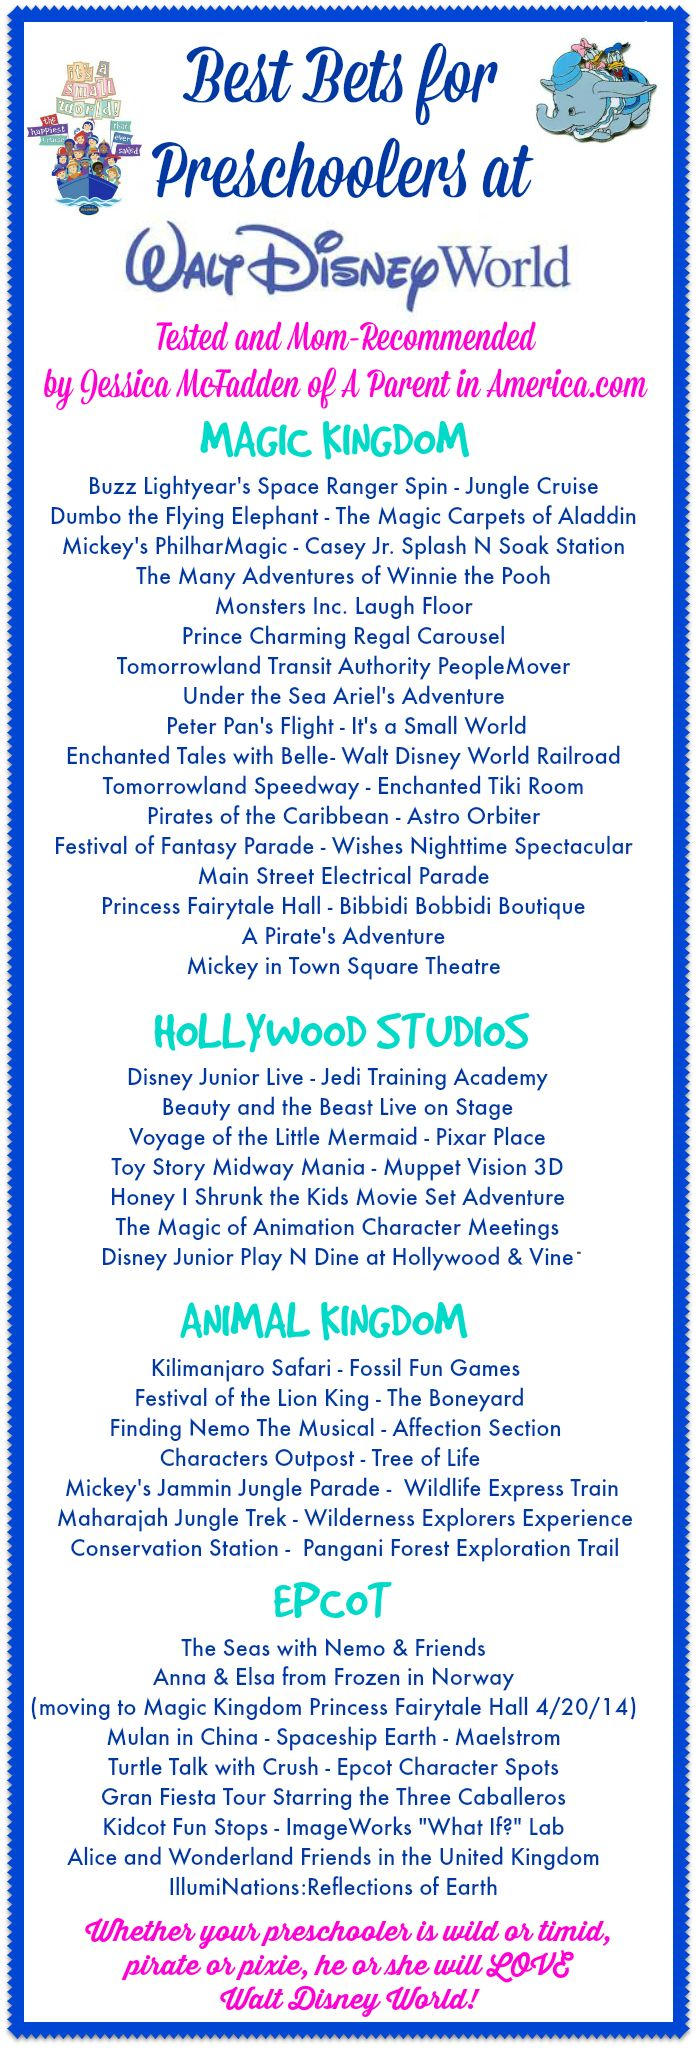 List of attractions suitable for pre-schoolers